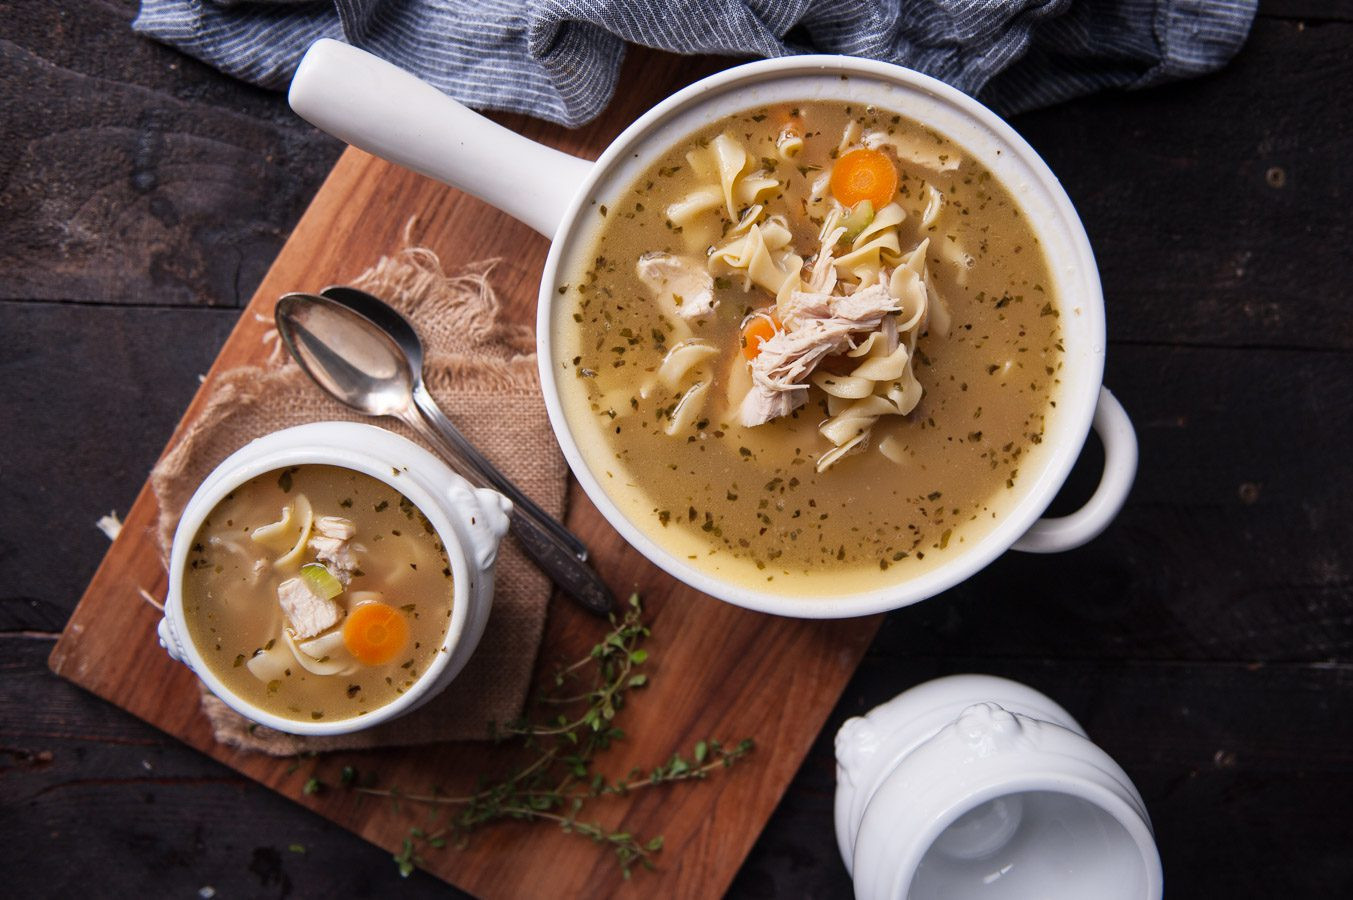 Turkey Soup From Leftover  Homemade Turkey Soup Recipe Using a Leftover Carcass